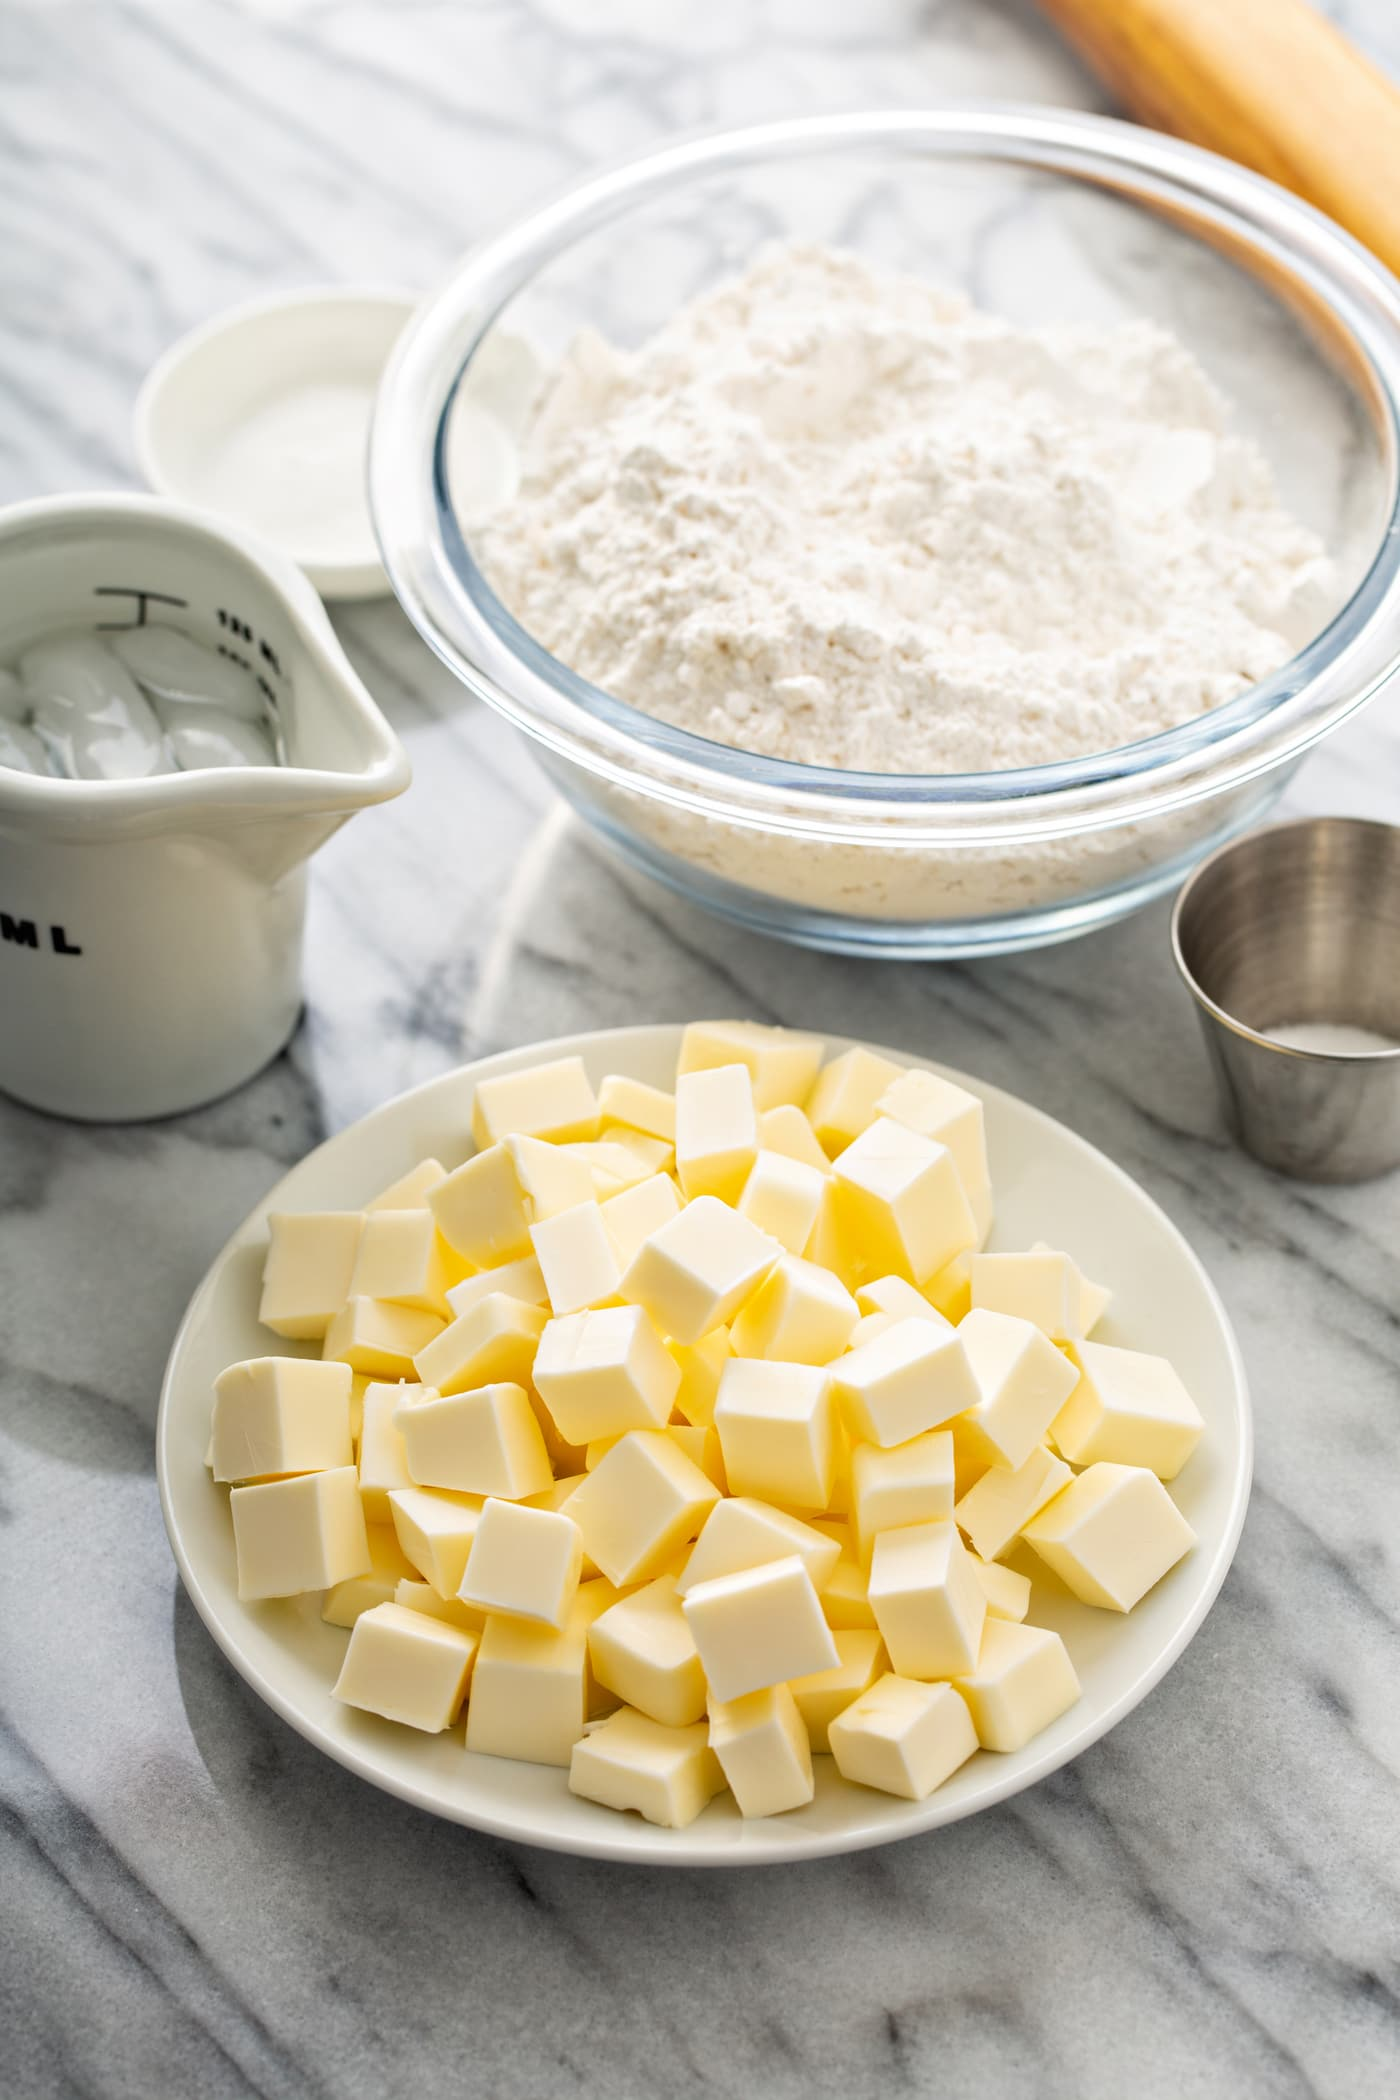 A photo of the ingredients for a perfect pie crust sitting on a table - flour, salt, ice water and small cubes of butter.